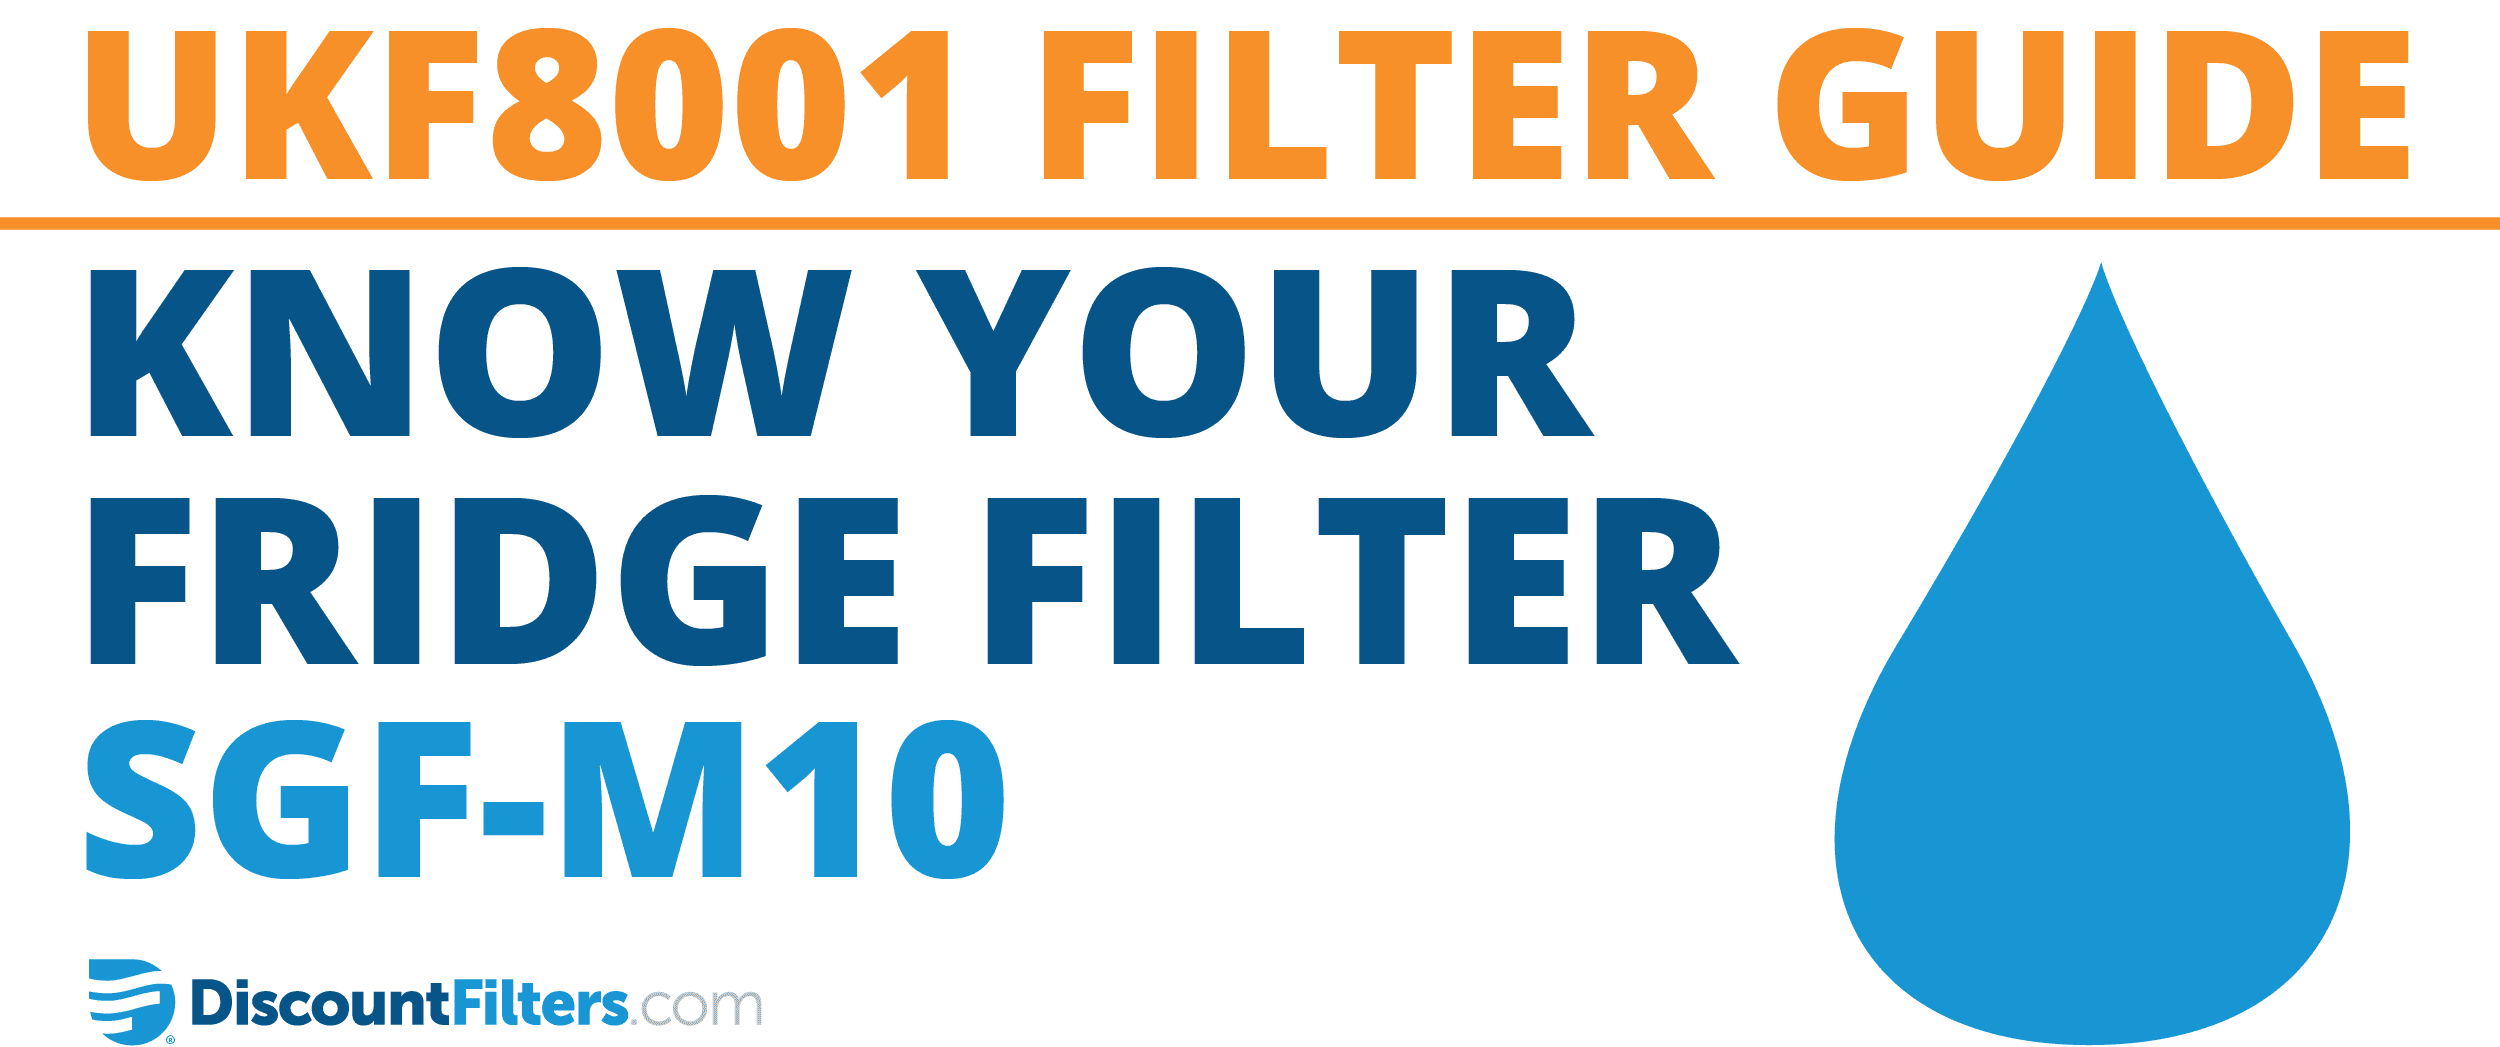 know your fridge filter sgf-m10 ukf8001 replacement